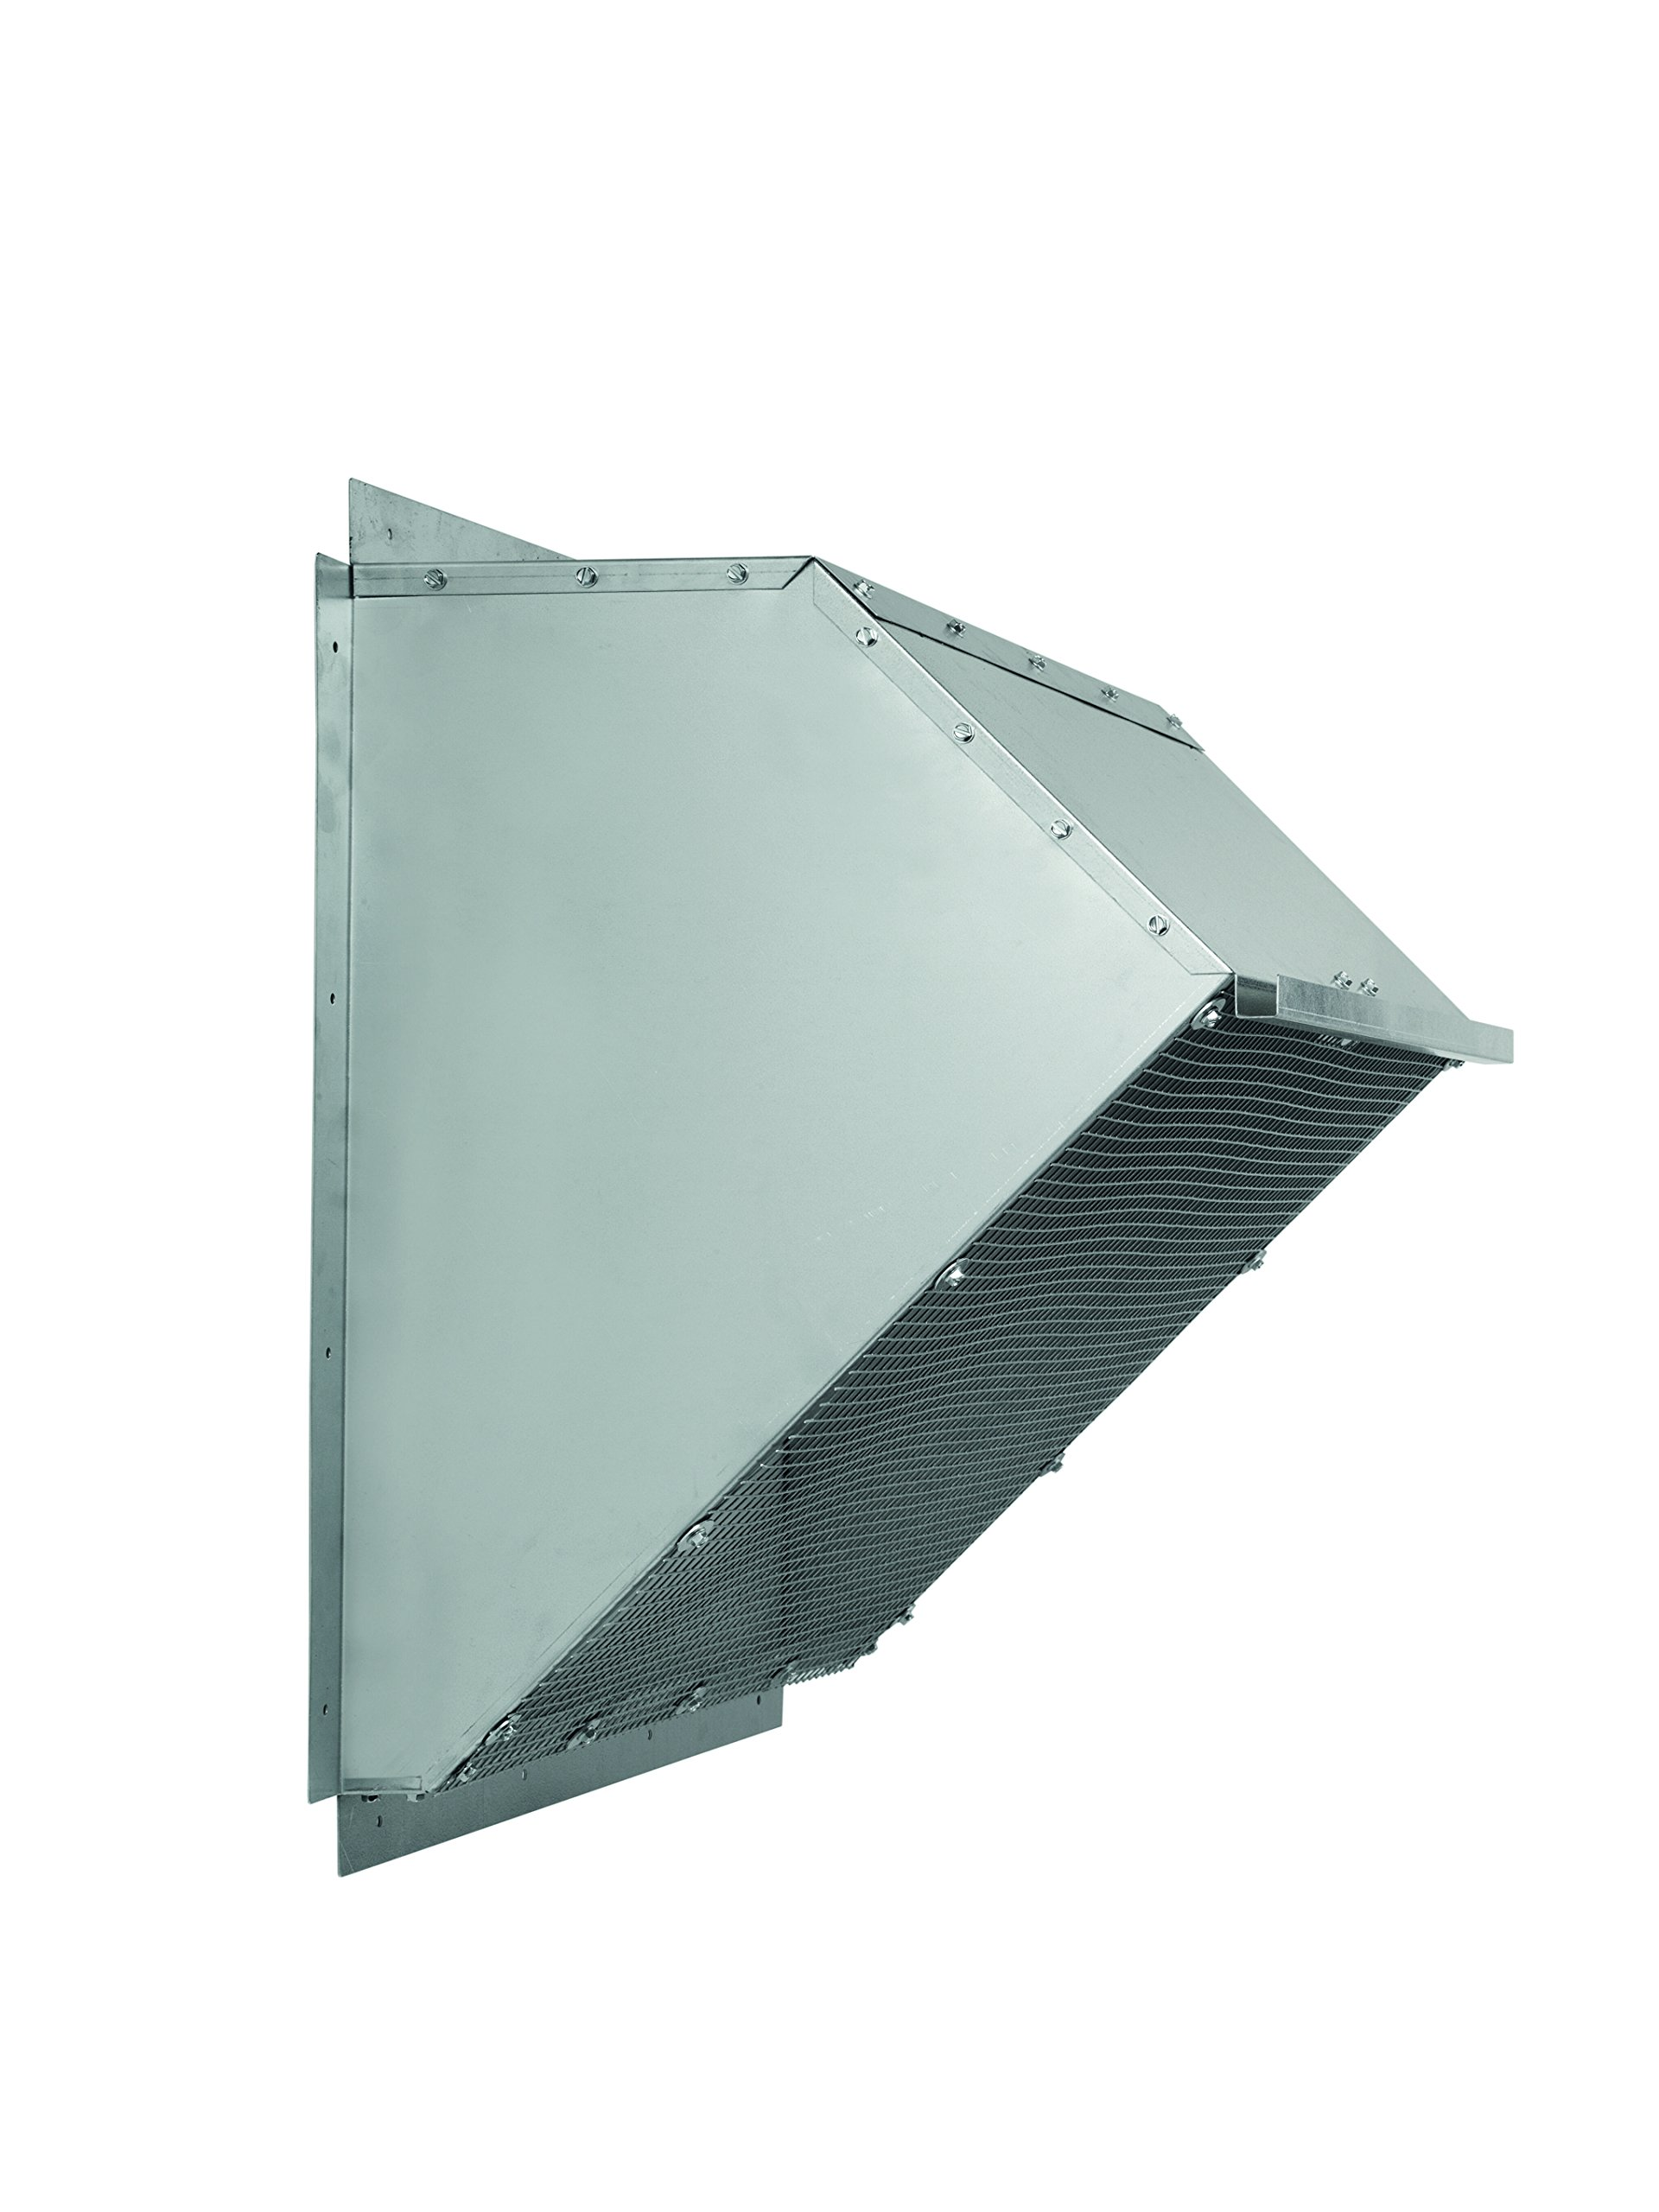 Fantech 1ACC24WH Weather Hood for Exhaust/Supply Fans, Galvanized, 24''